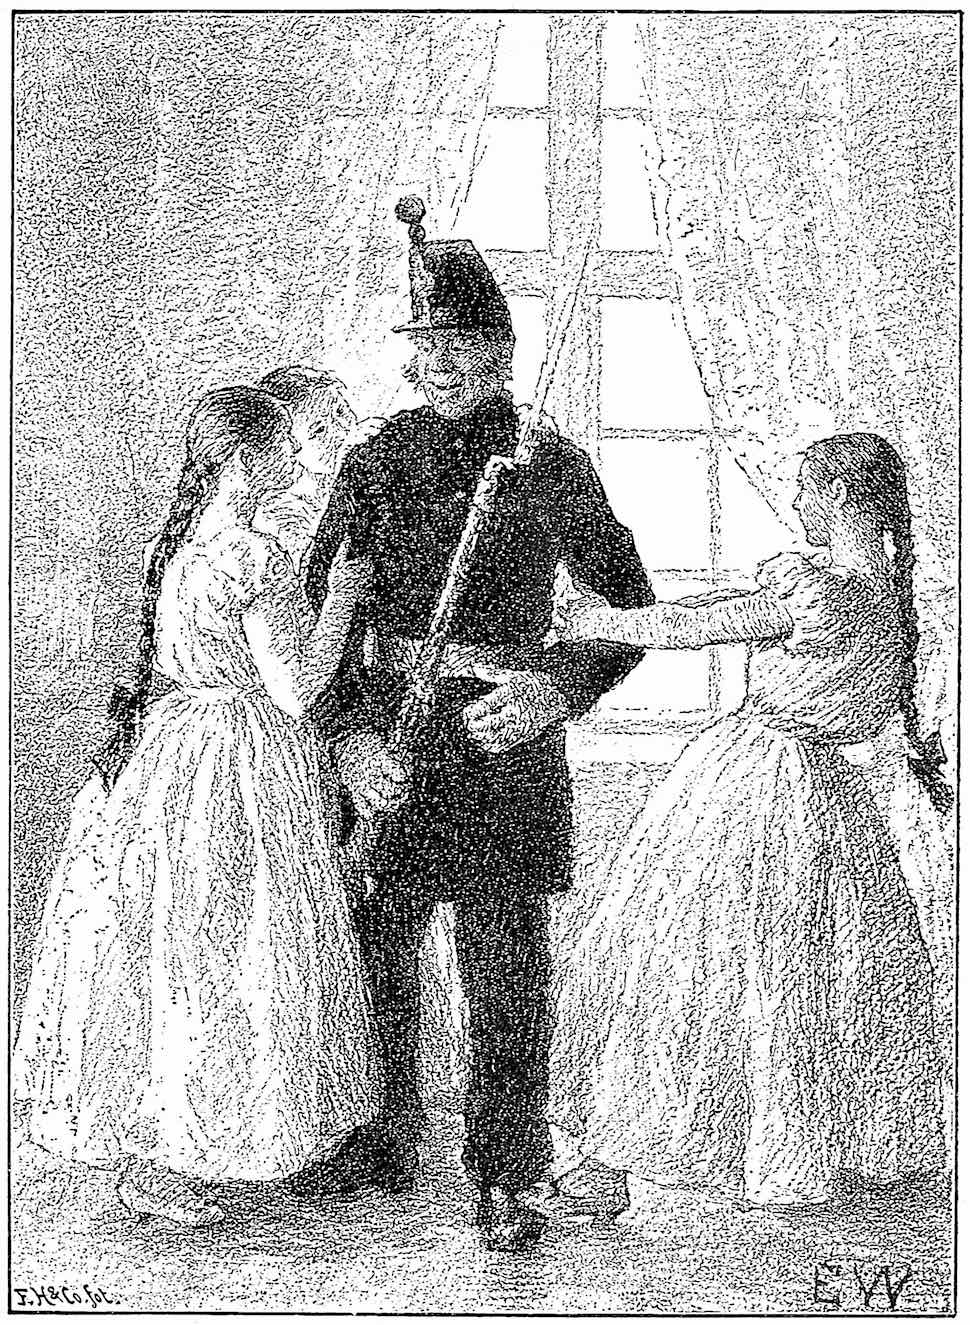 a Peter Christen Asbjørnsen 1909 illustration of women romantically tugging at an unlikely old soldier